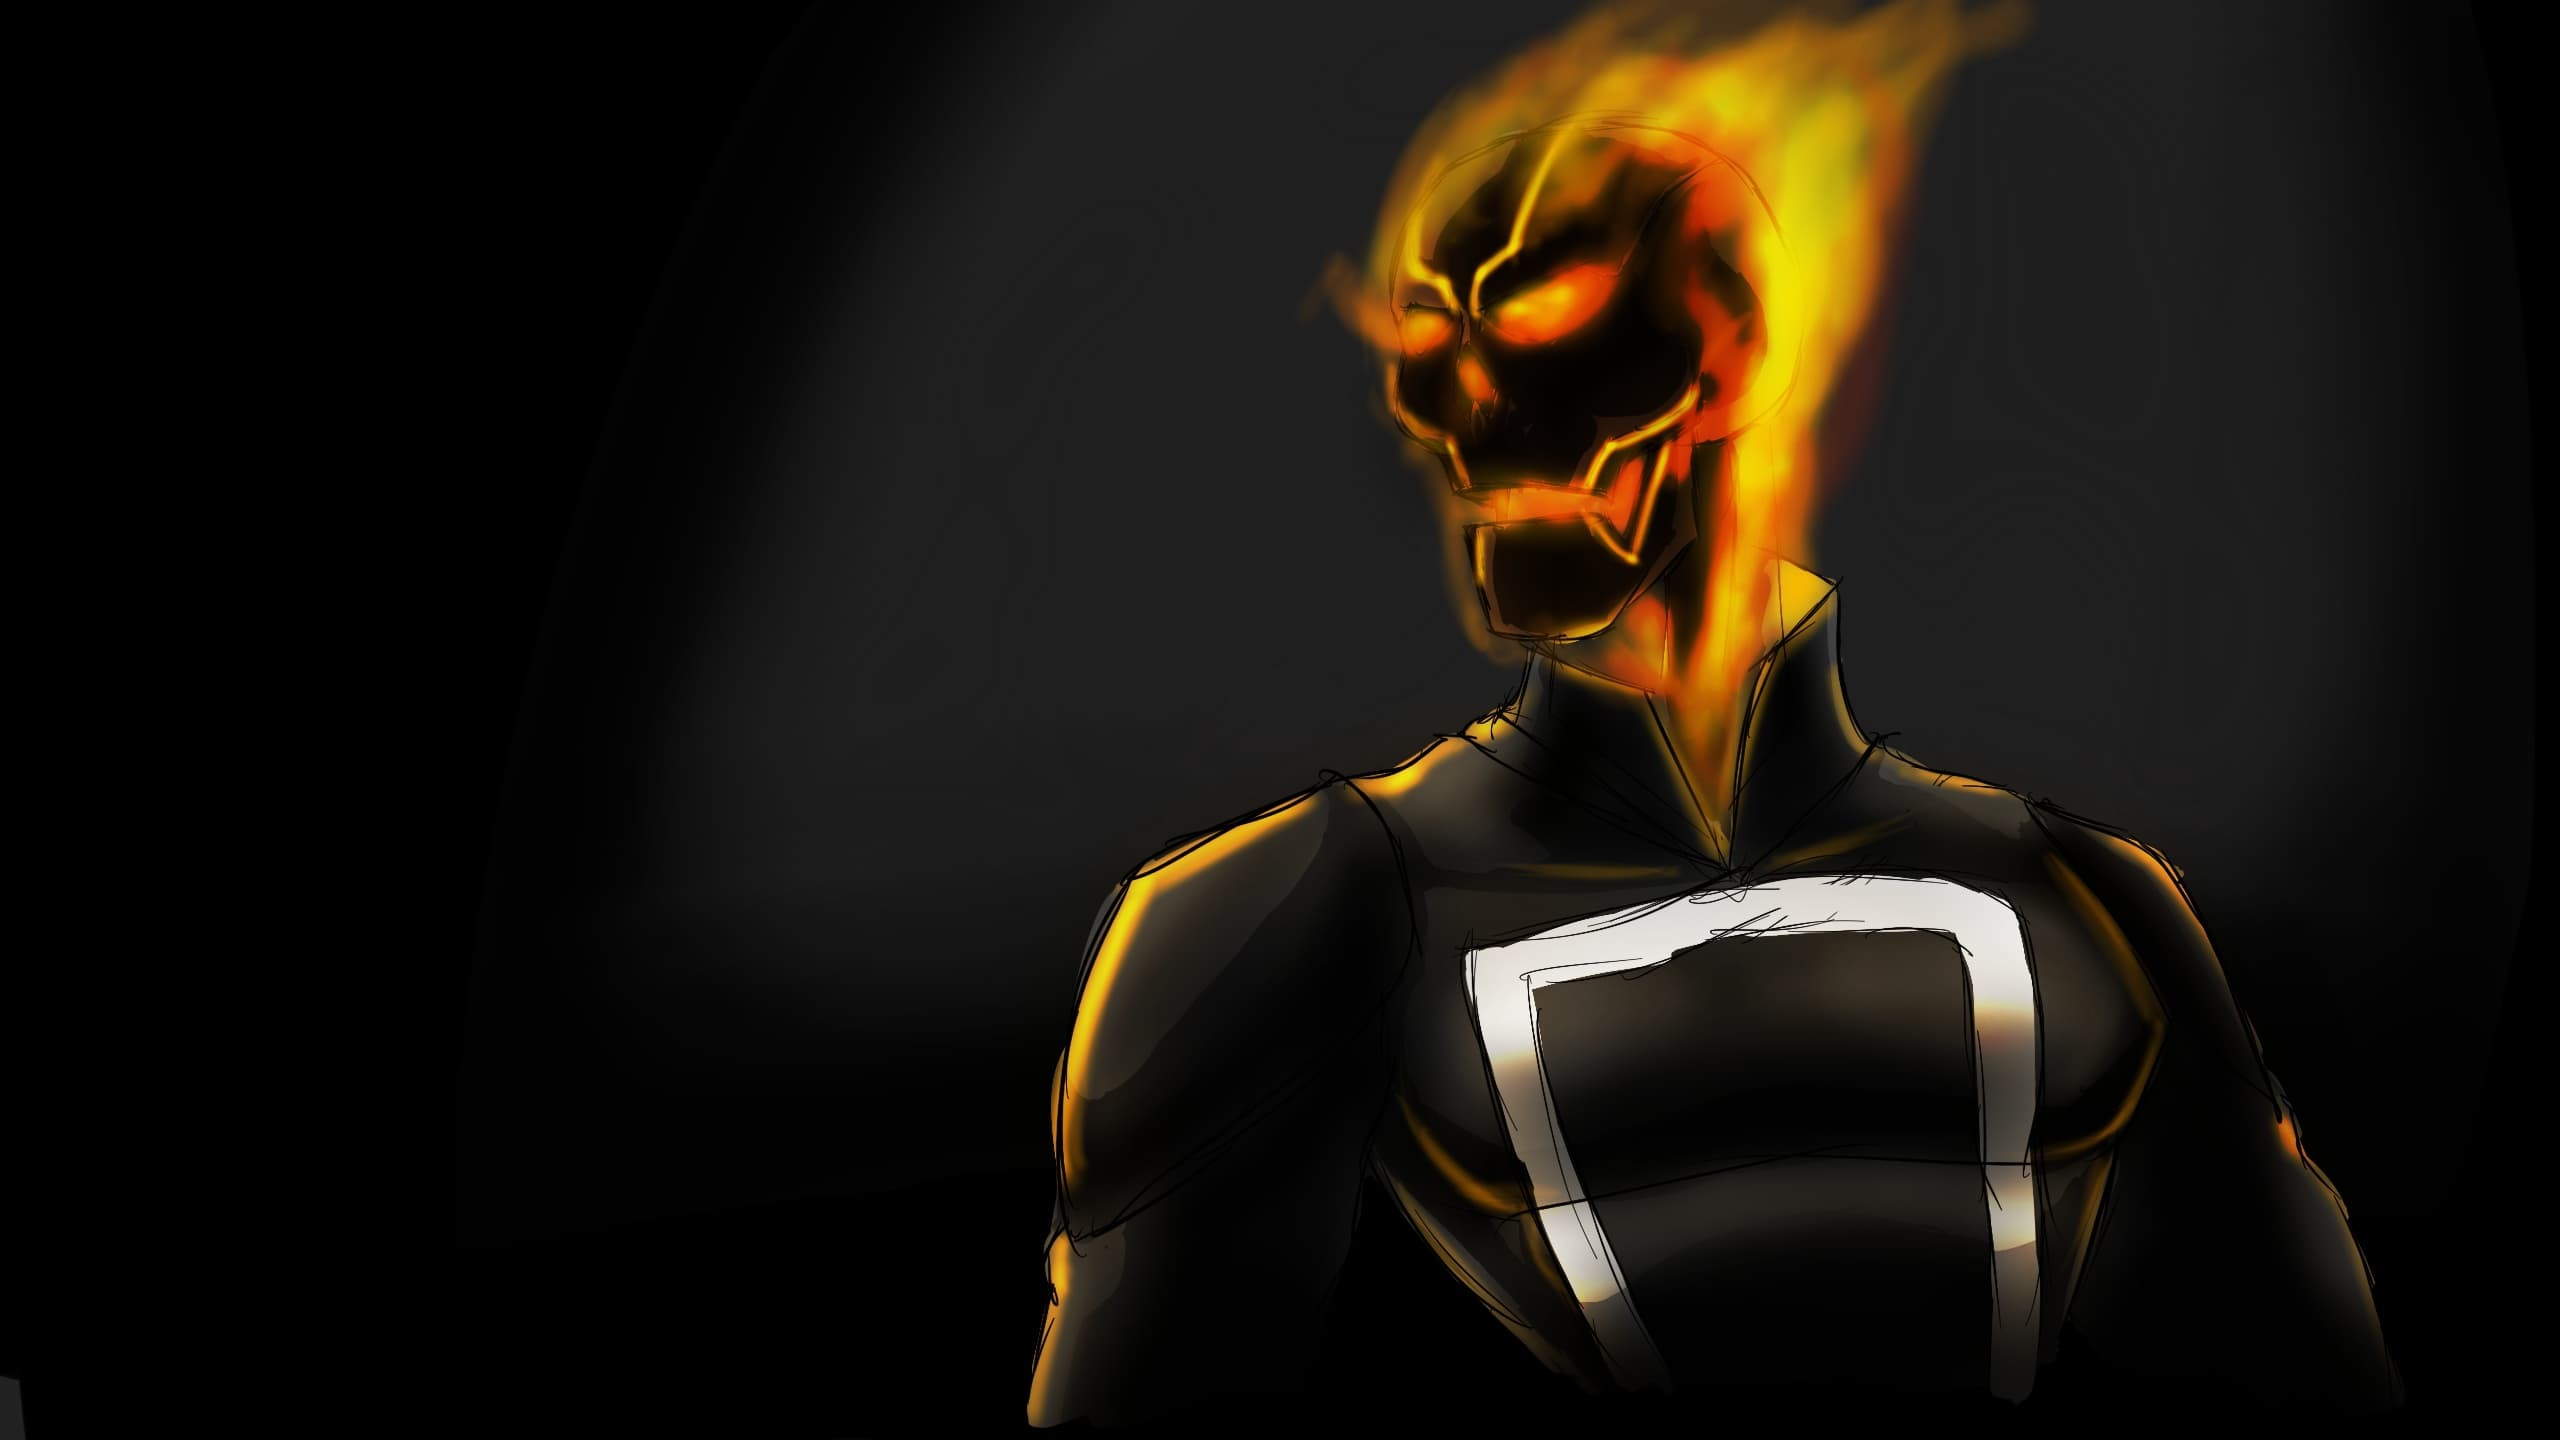 2560x1440 TV Series - Agents of Shield: Ghost Rider art